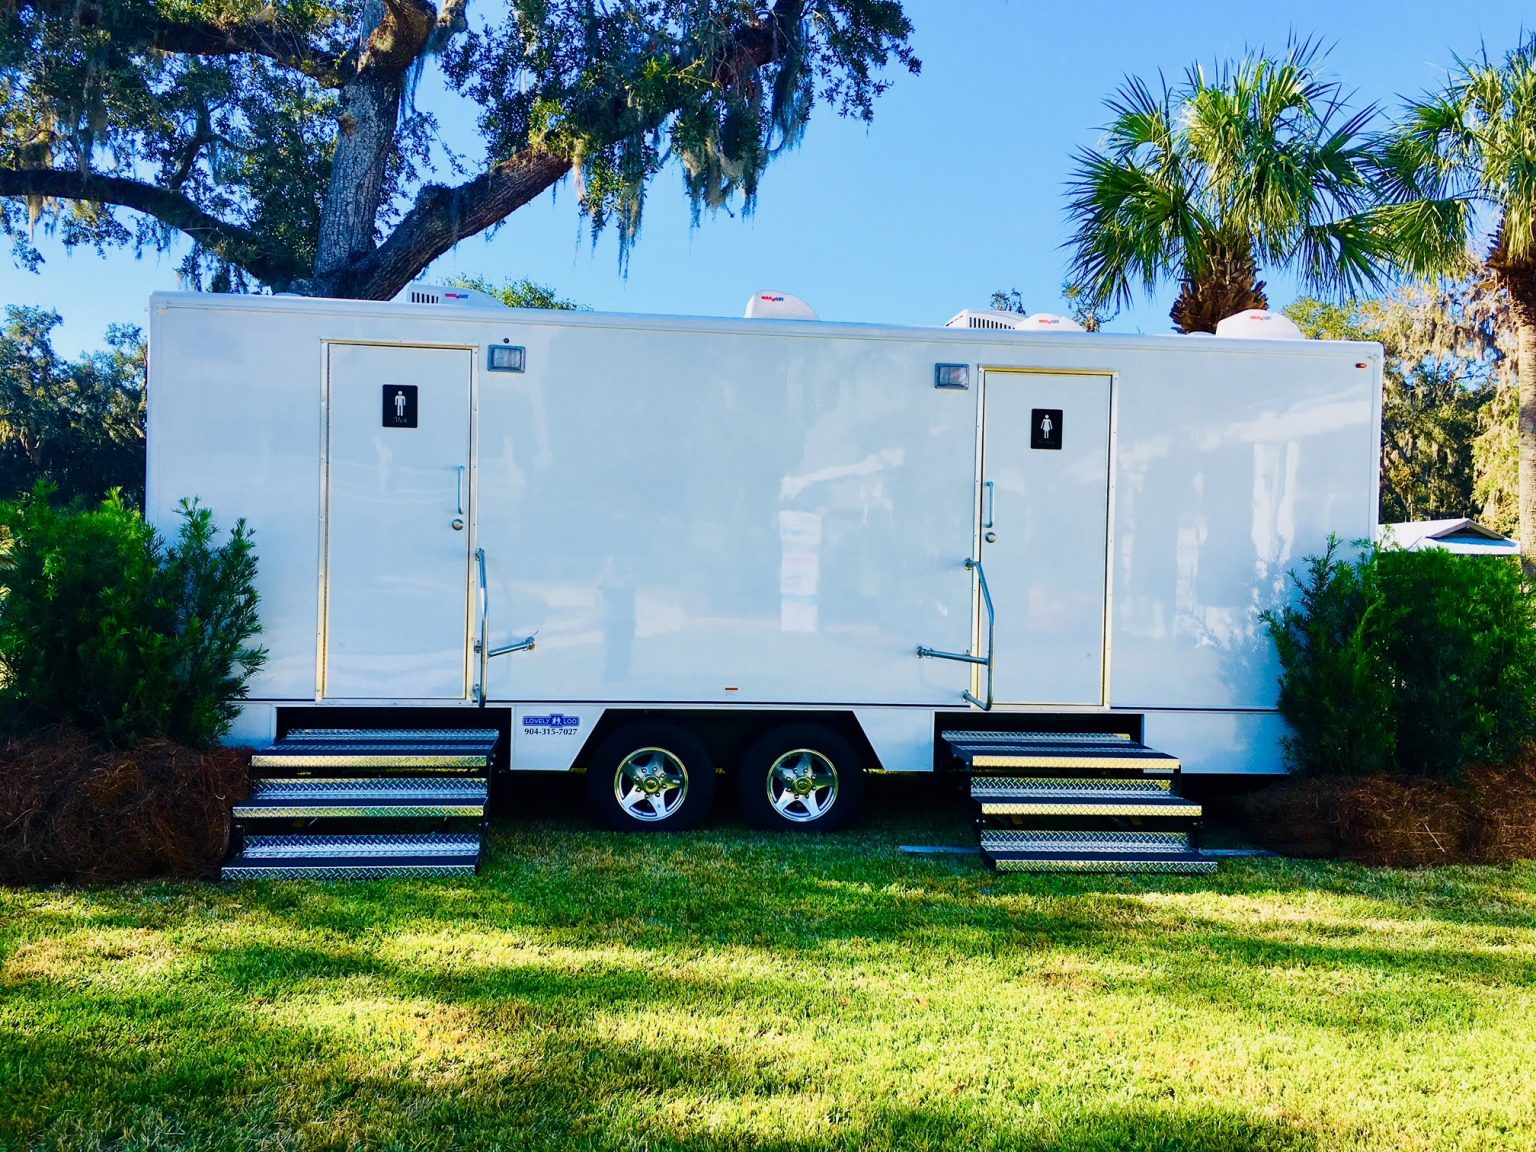 Nice, Luxury Porta Potties and Bathroom Trailers – Options and Where To Find Them?